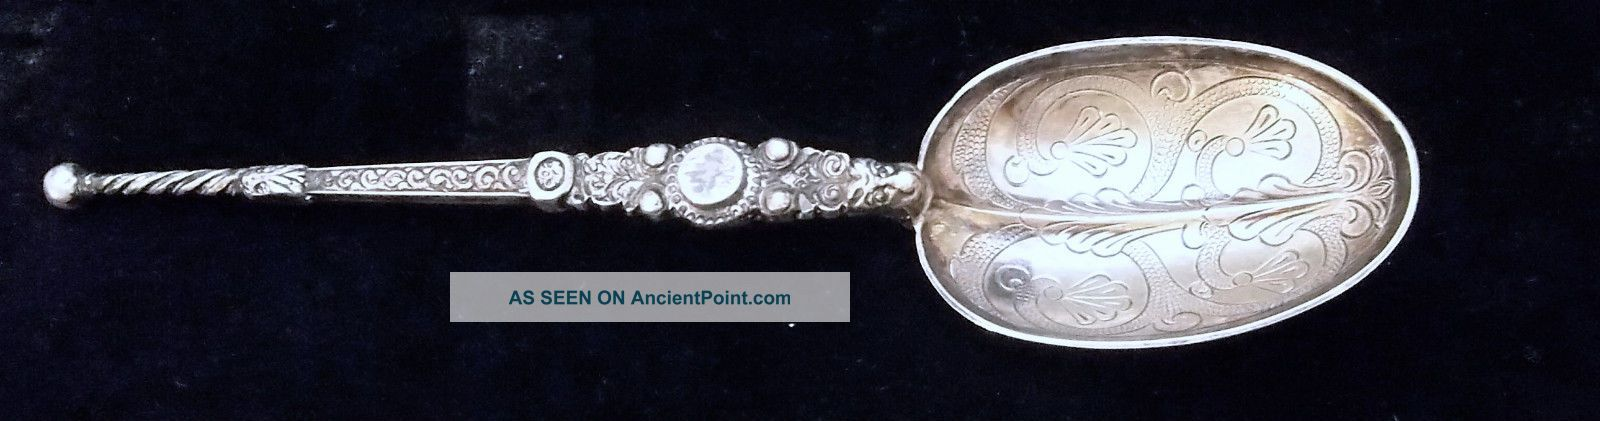 Antique Wakely And Wheeler Gilt Sterling Silver Coronation Serving Spoon St - 713 United Kingdom photo